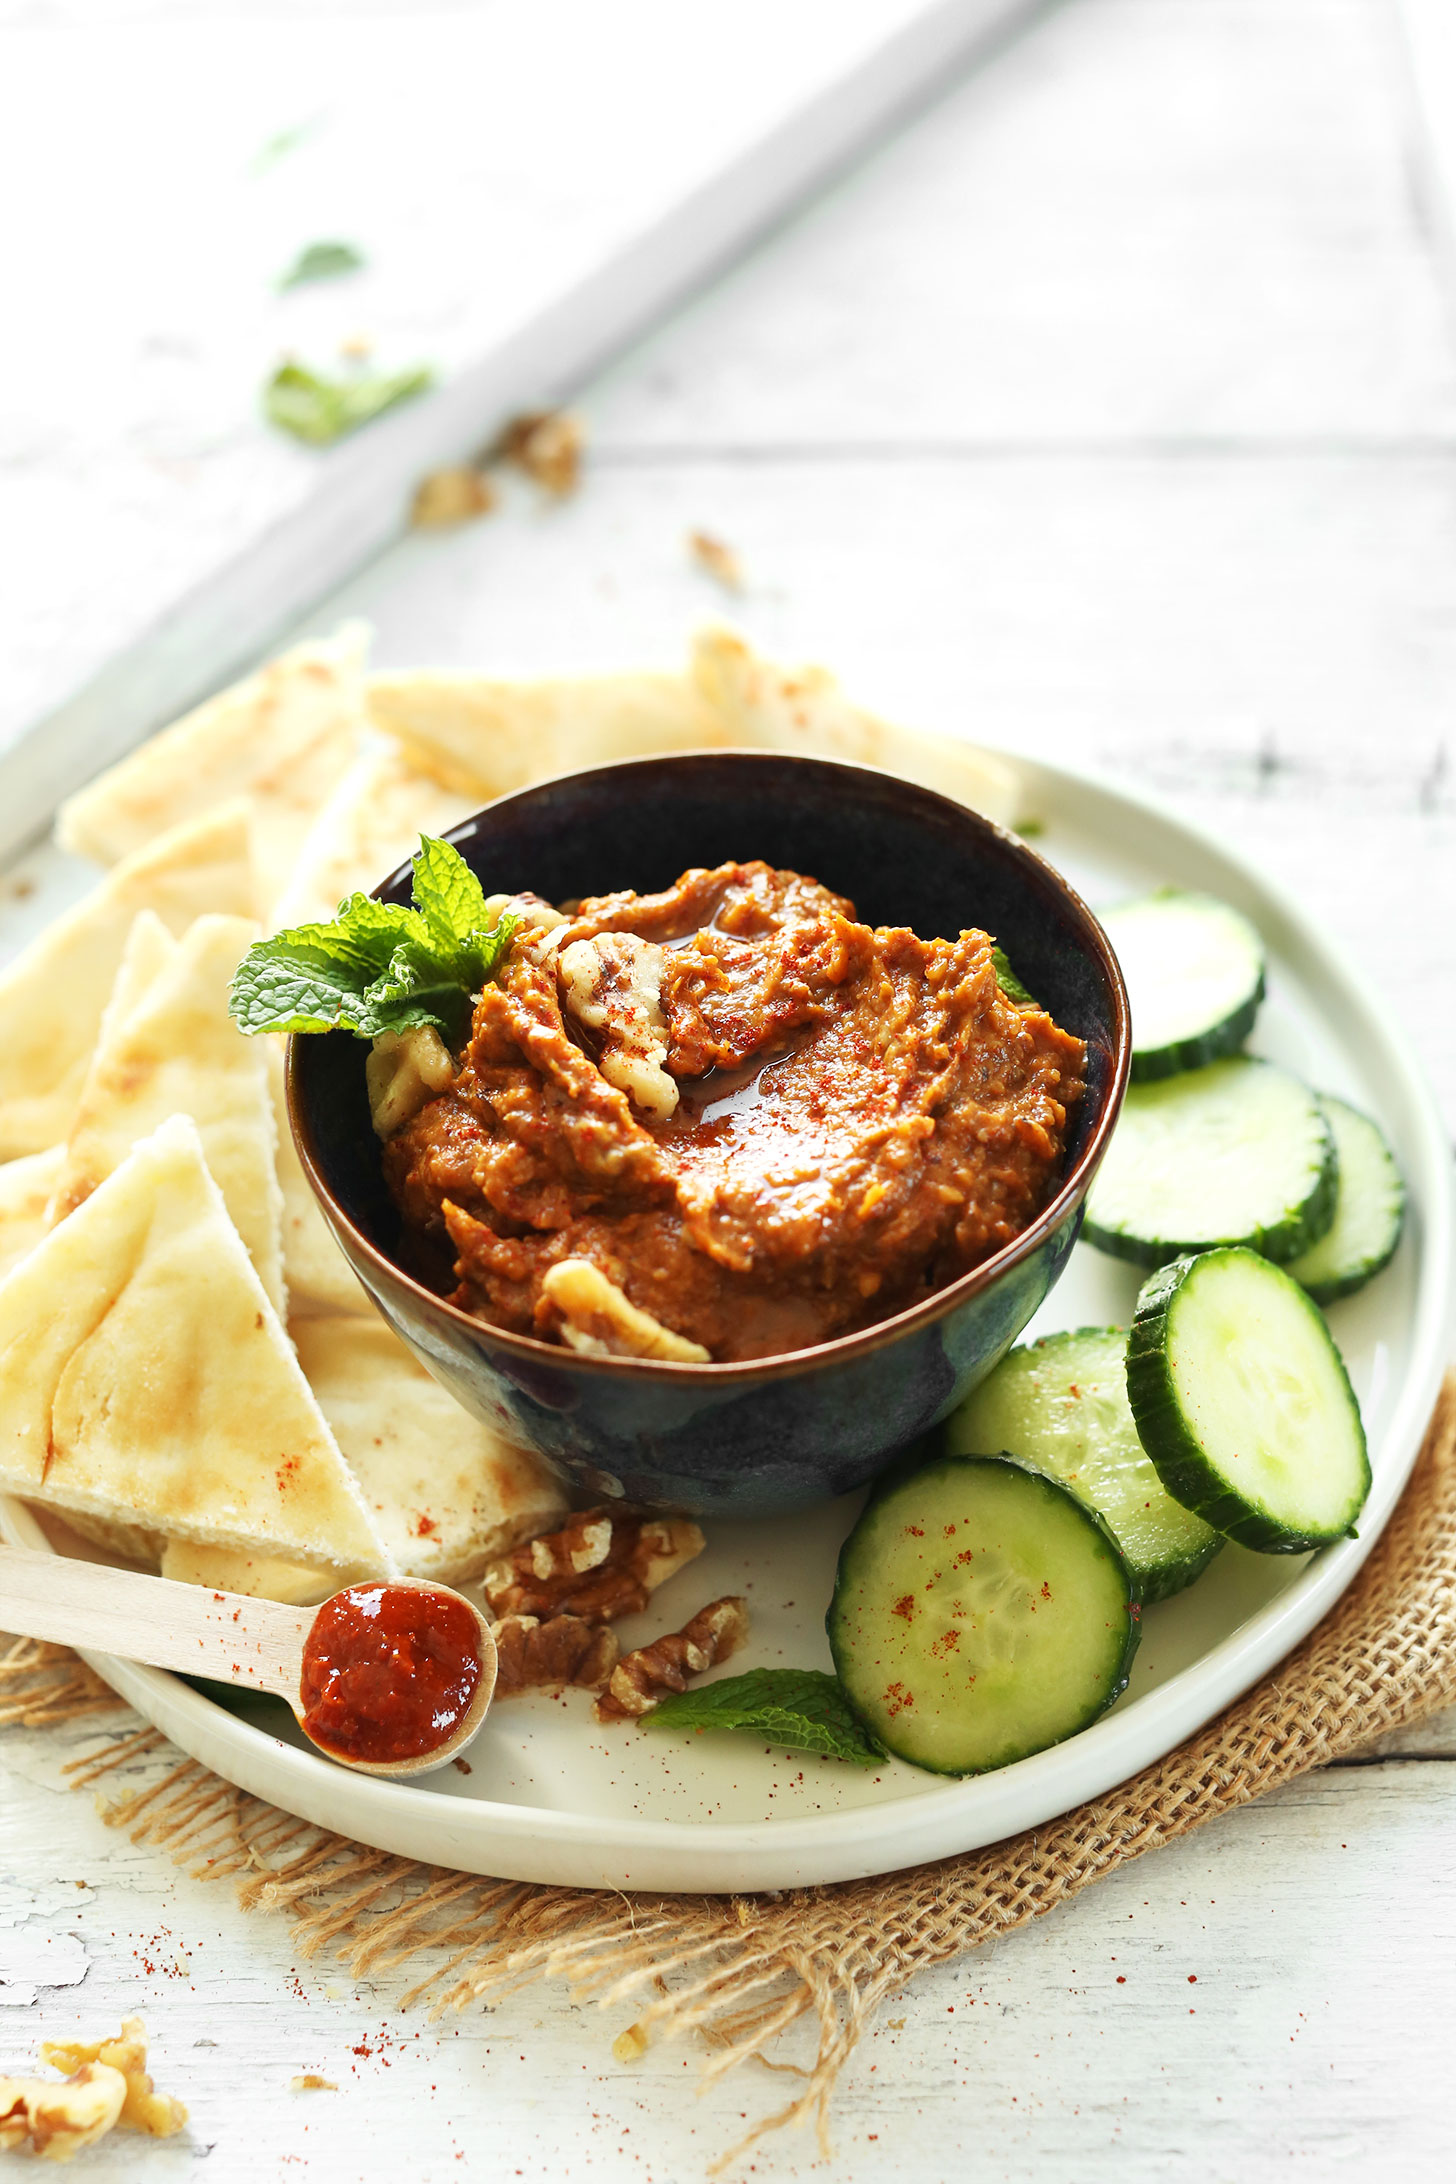 Smoky-Harissa-Eggplant-Dip-Creamy-smoky-spicy-The-perfect-appetizer-or-side-vegan-glutenfree-dip-eggplant-recipe-appetizer